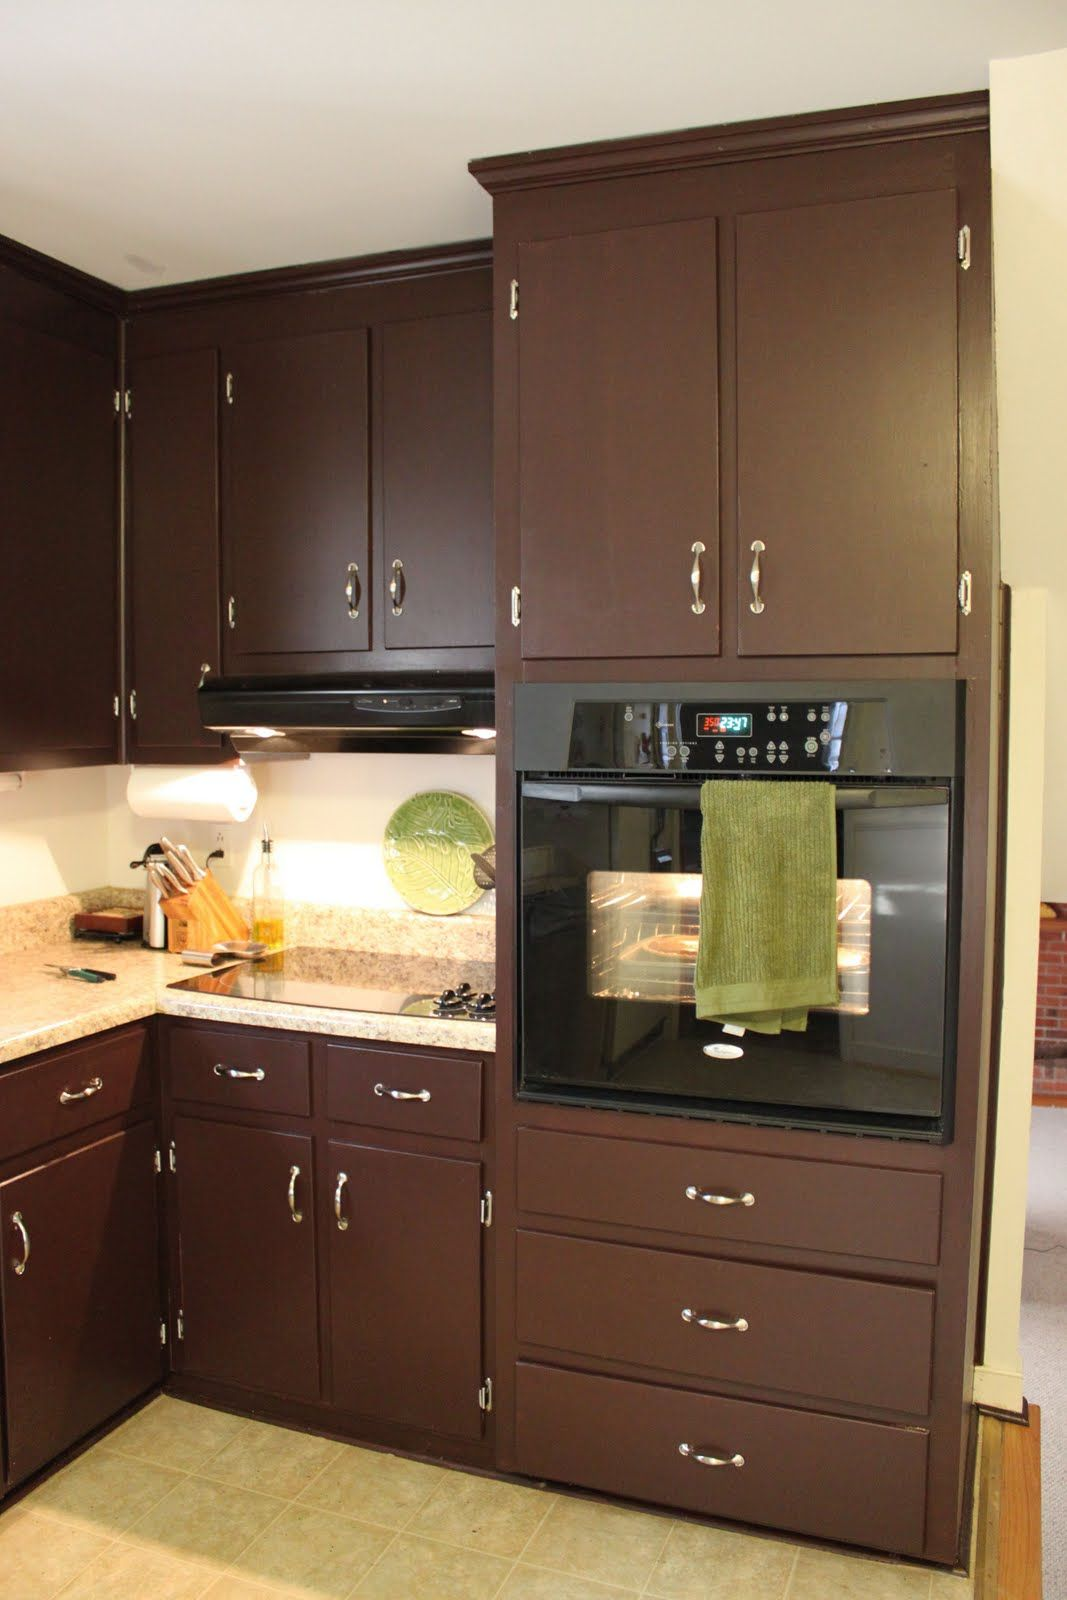 Superb Brown Painted Kitchen Cabinets U0026 Silver Hardware .. Looks Like Our Floor In  This Photo Too! :)